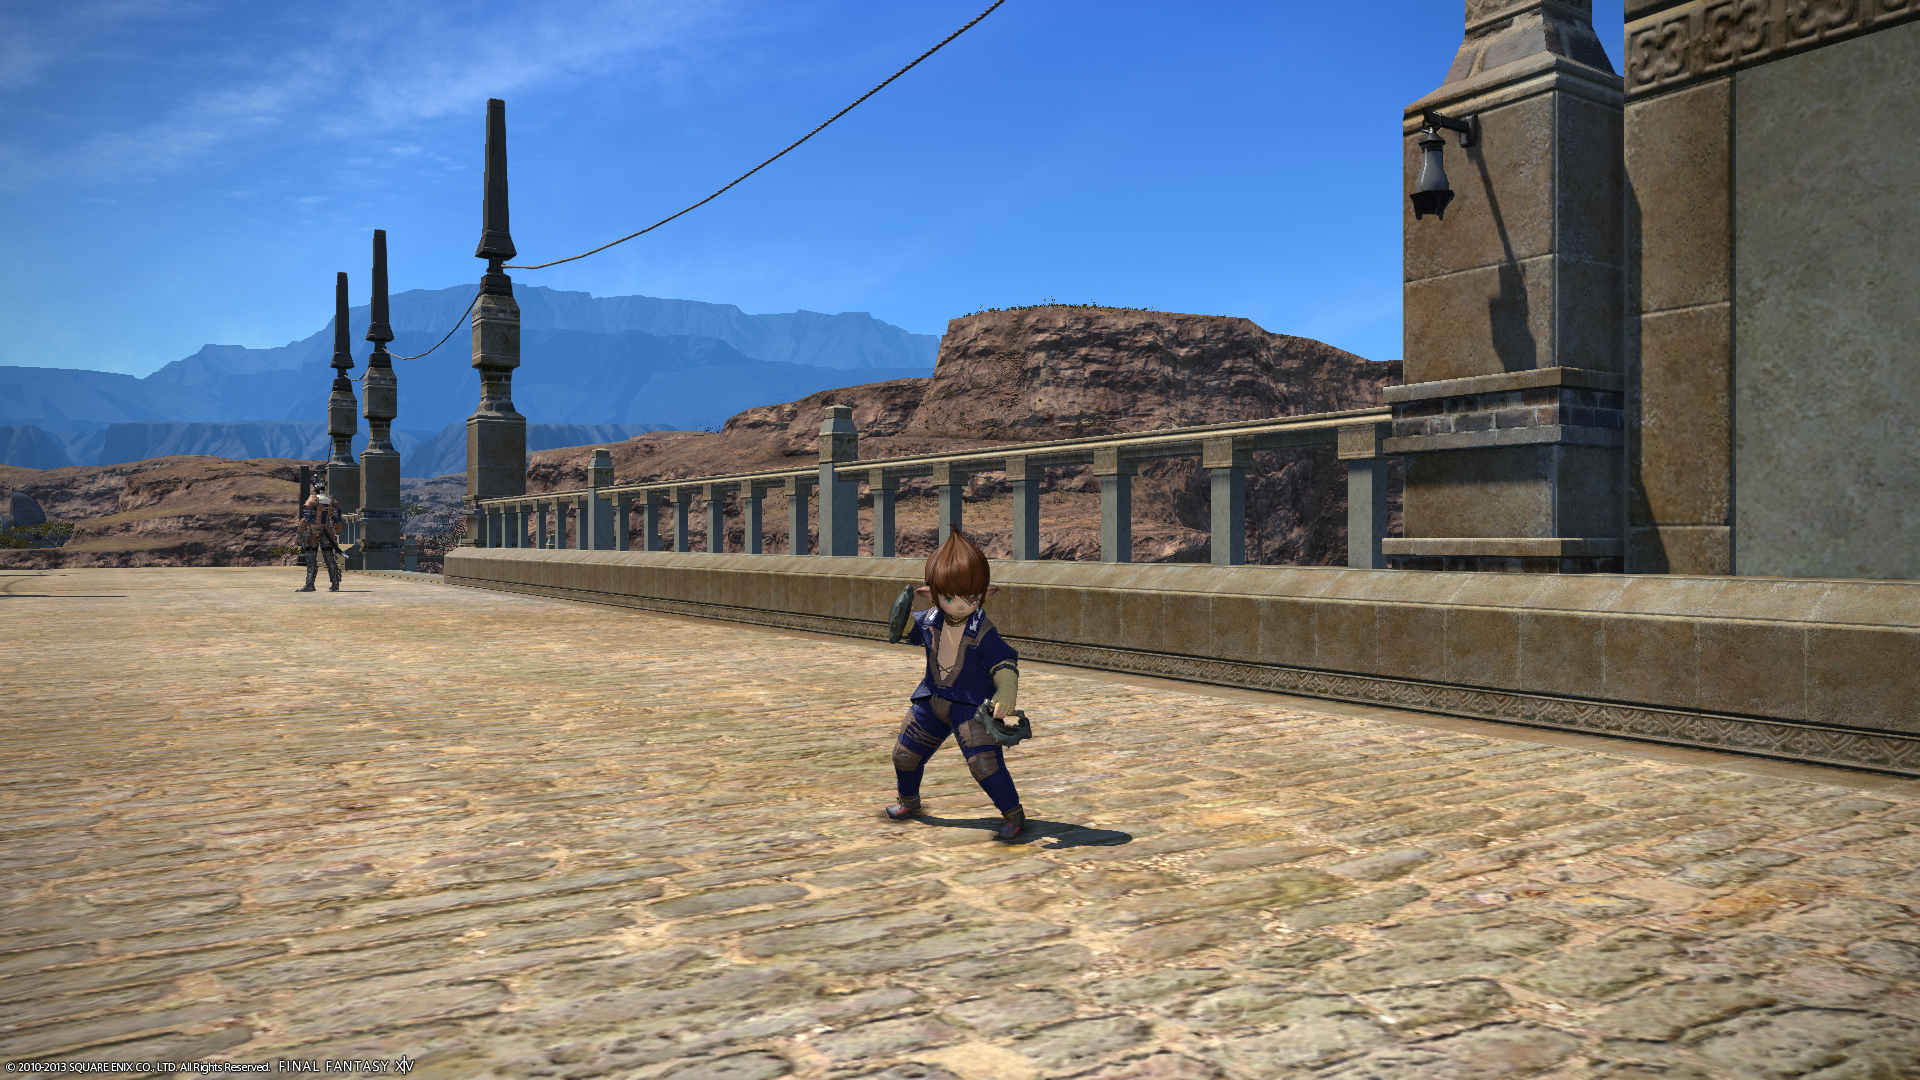 rocl ffxiv know ears really this used shitpost with just like deal forum over month entire grind inb4 lala thread picture cute lalafell coming that fate posting soon